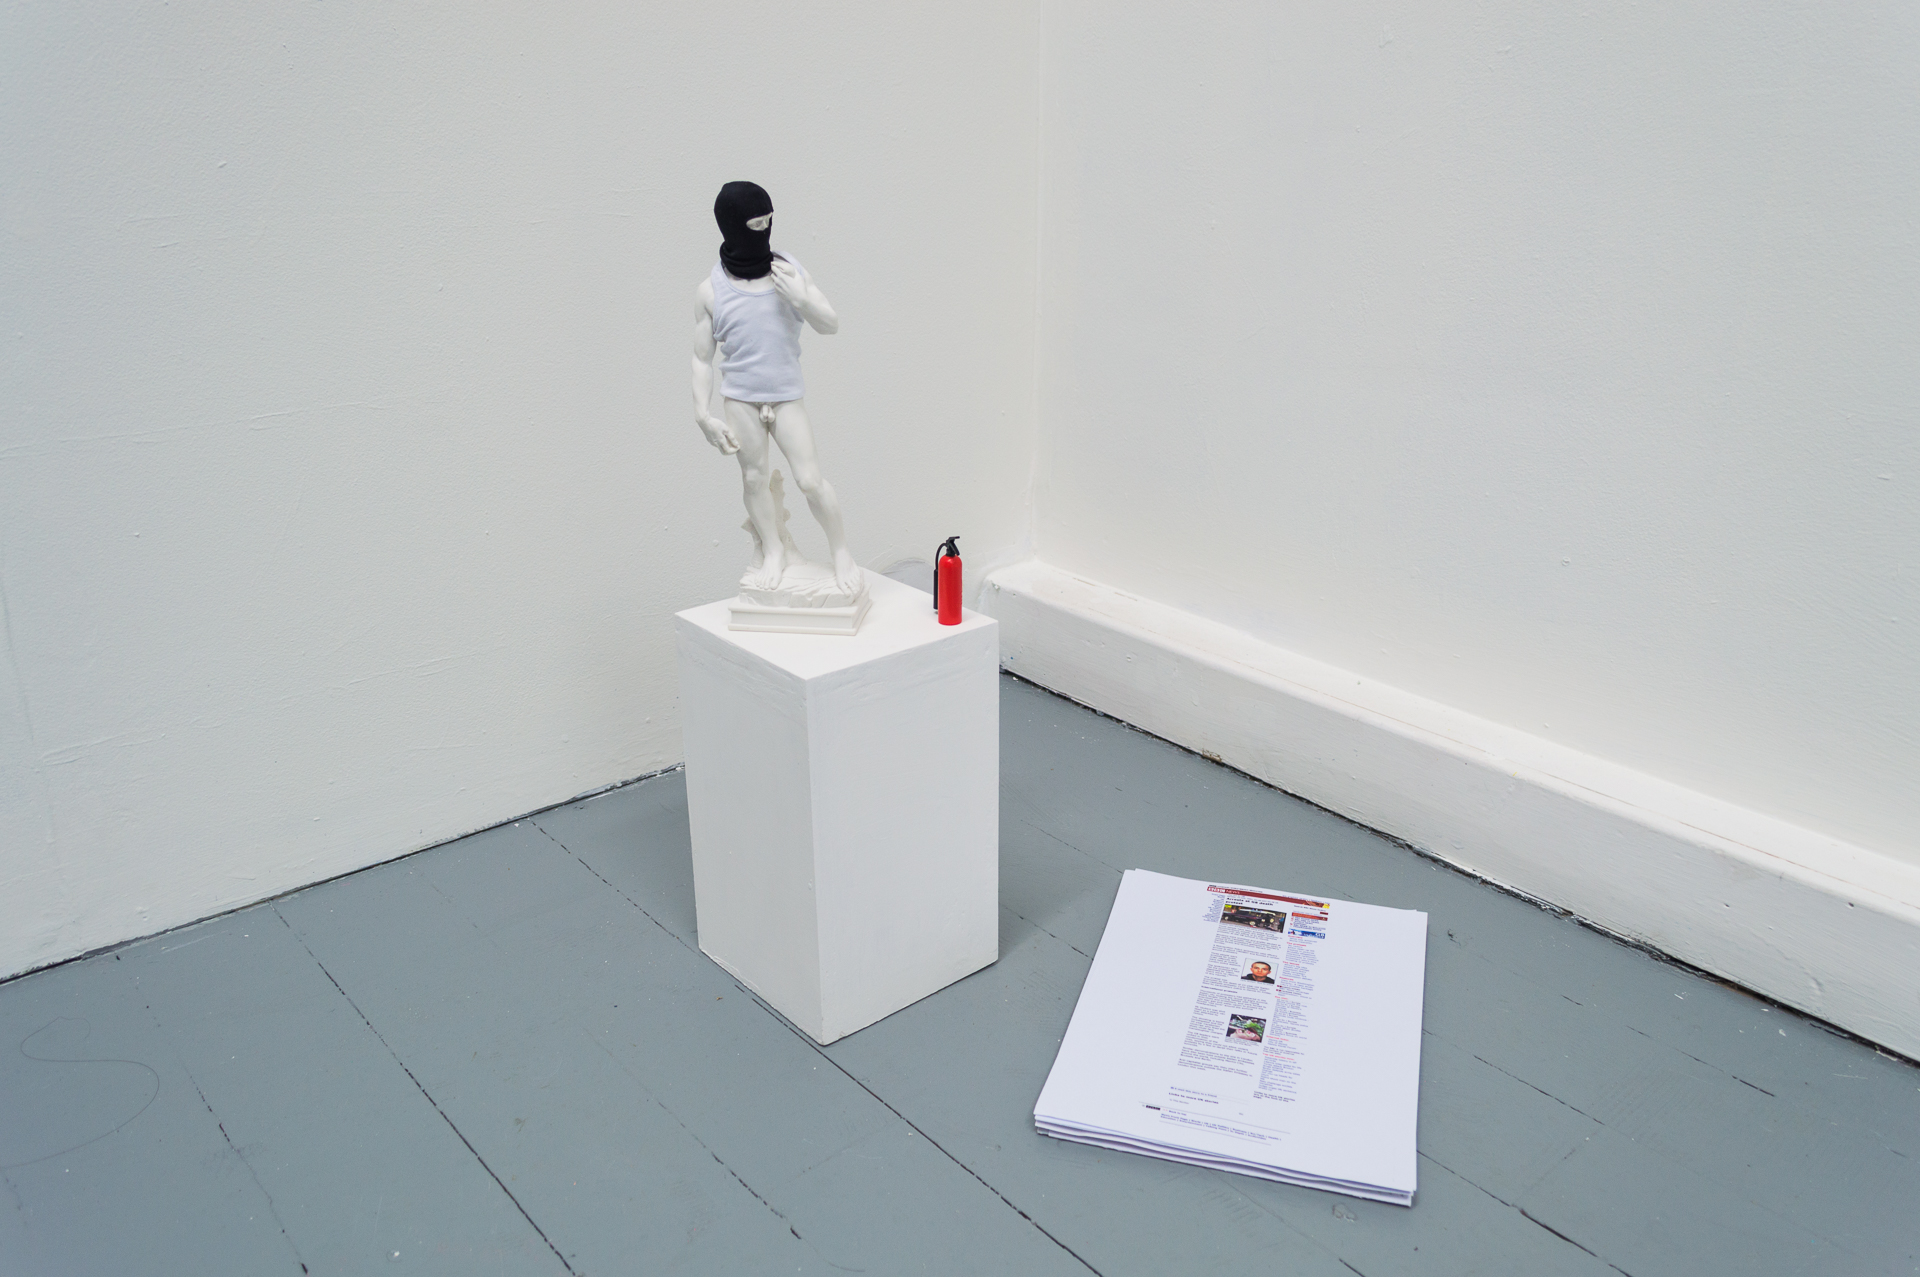 21 JULY 2001, marble powder cast, scale model clothing, fire extinguisher scale model, digital print, plinth. (Statue 45 x 20 cm; plinth 25 x 15 x 15cm), 2017.